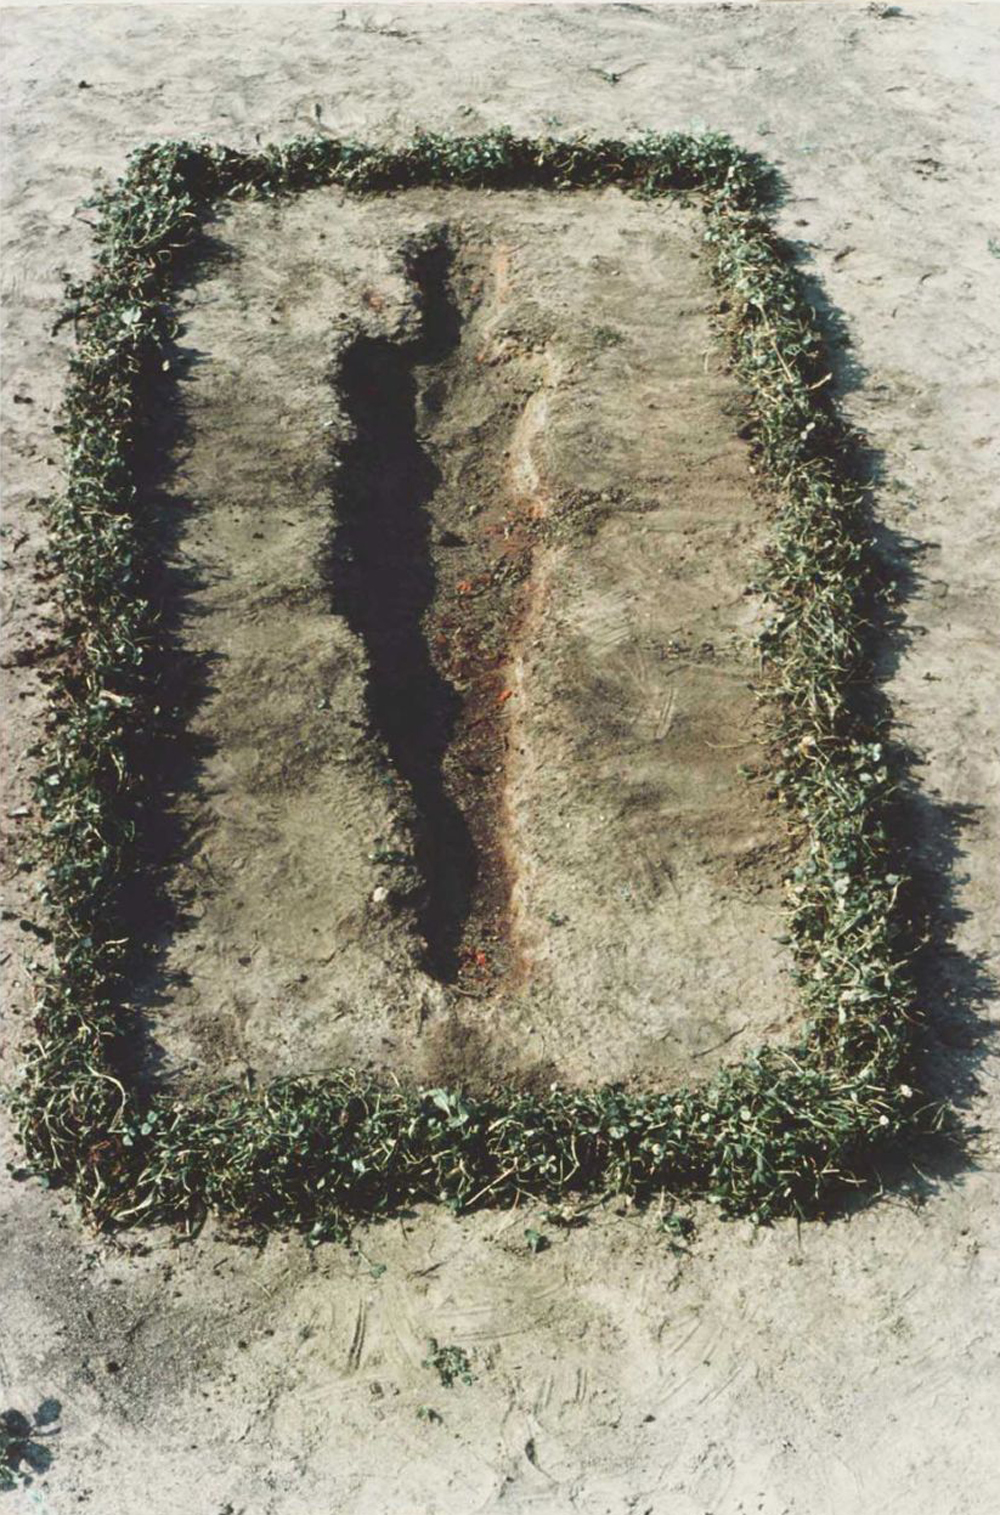 Untitled by Ana Mendieta. Made with Wood and Gunpowder. Colour Photograph, lifetime print.